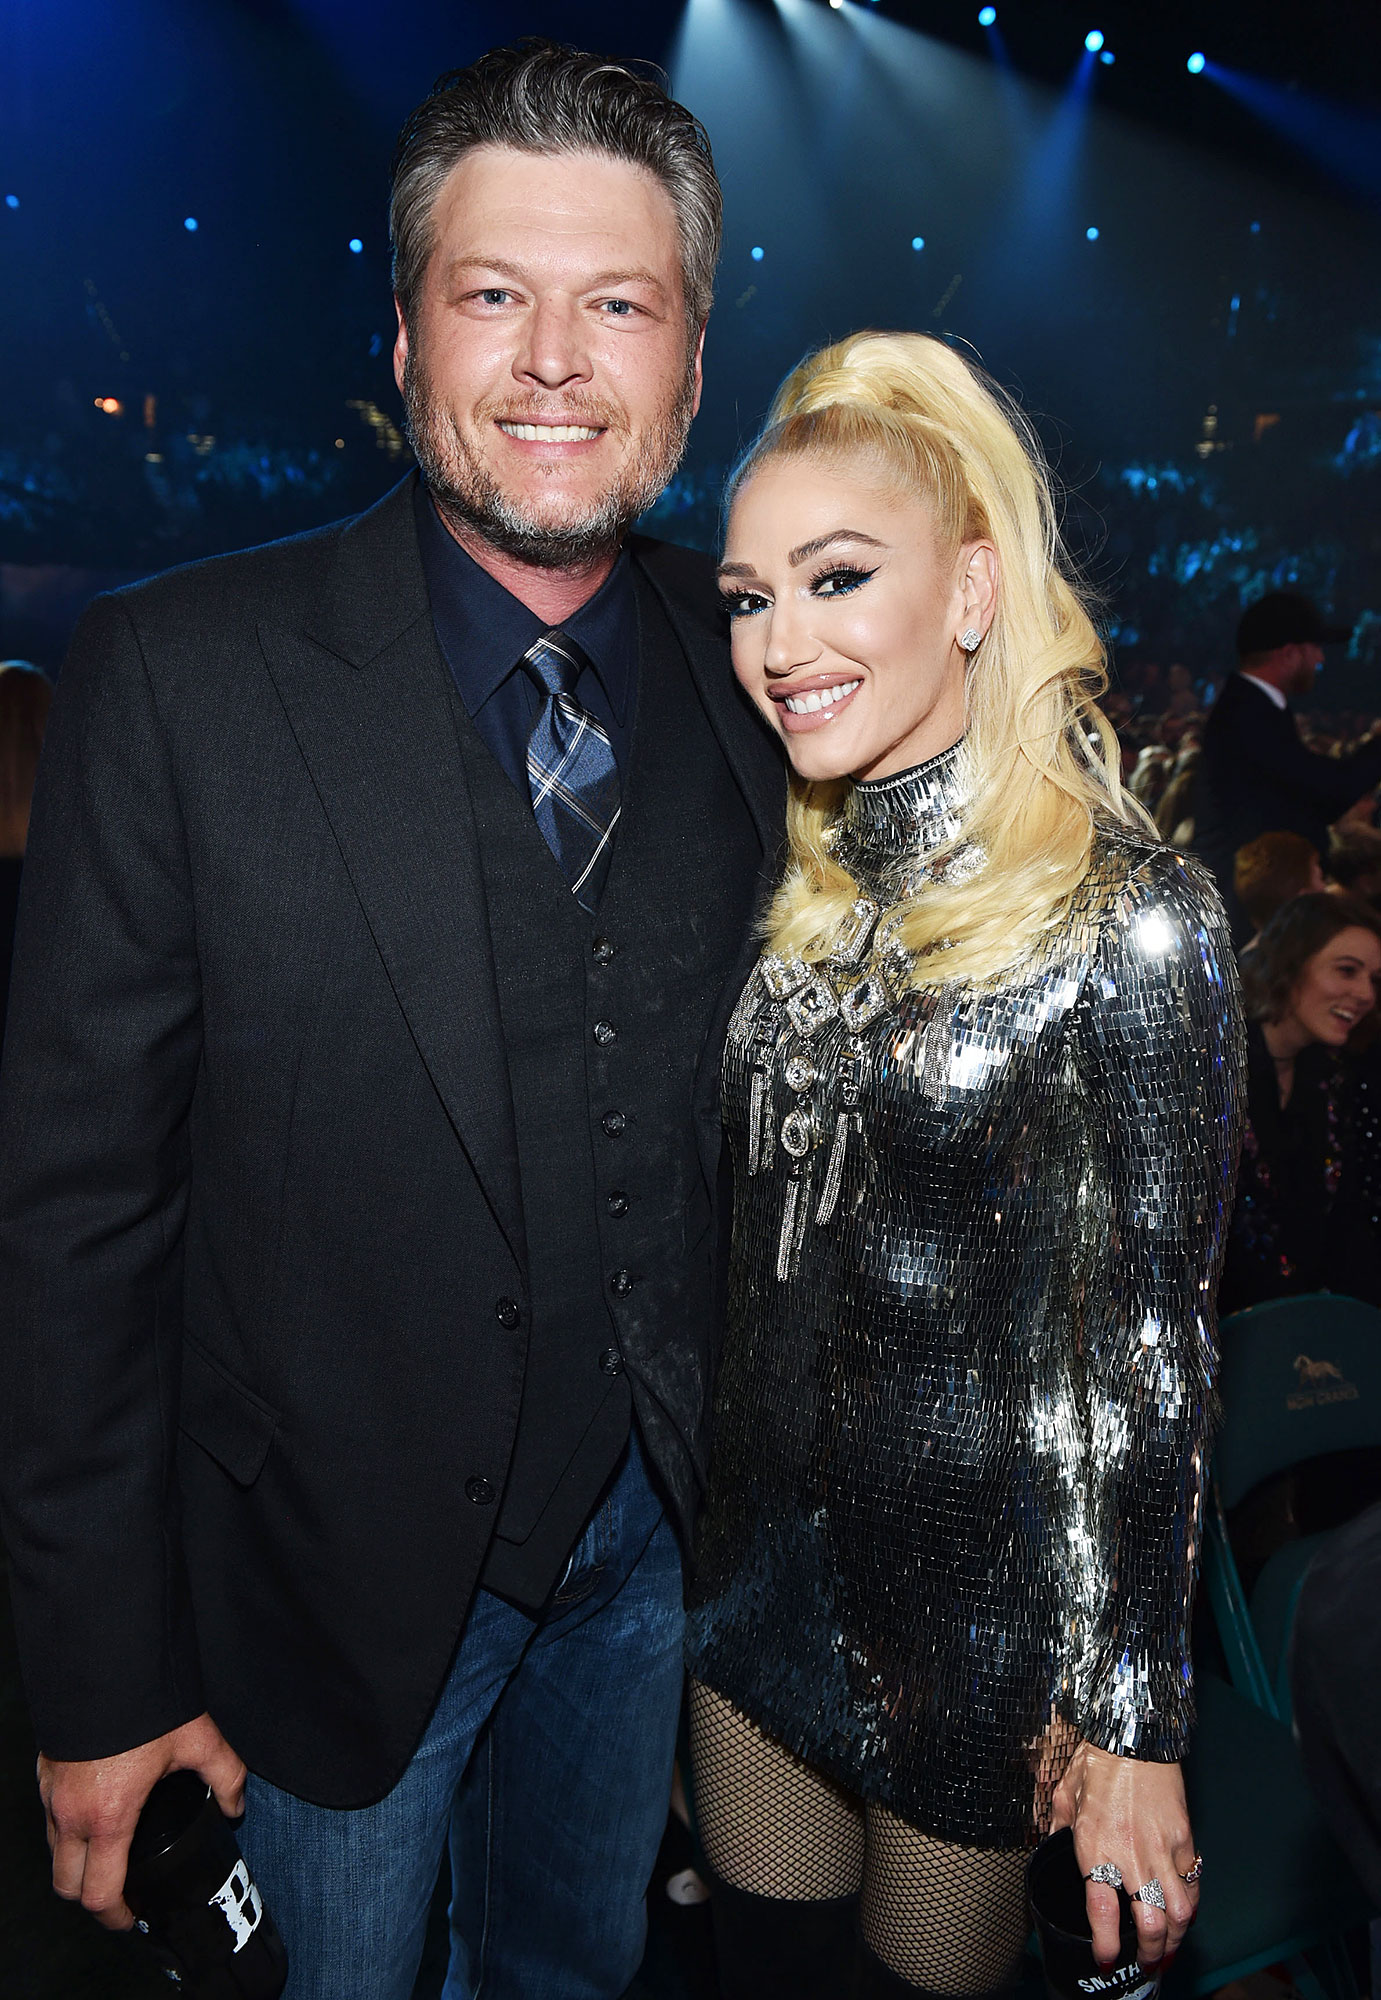 Inside ACM Awards 2019 Blake Shelton Gwen Stefani - Shelton and Stefani looked so in love during the occasion.